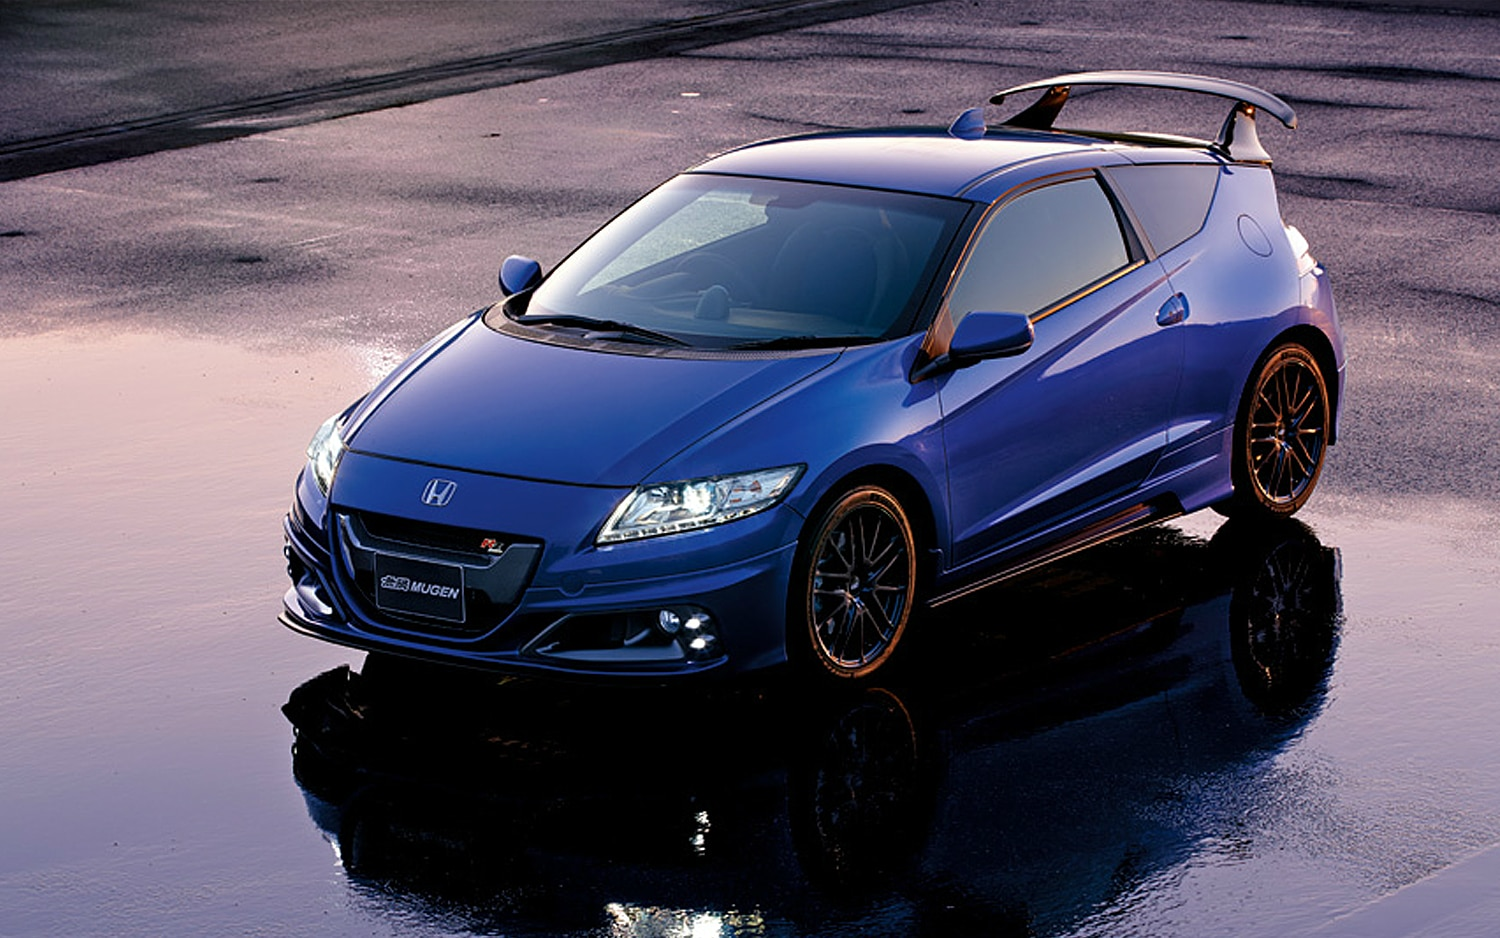 mugen gives the honda cr z 174 hp loud body kit. Black Bedroom Furniture Sets. Home Design Ideas